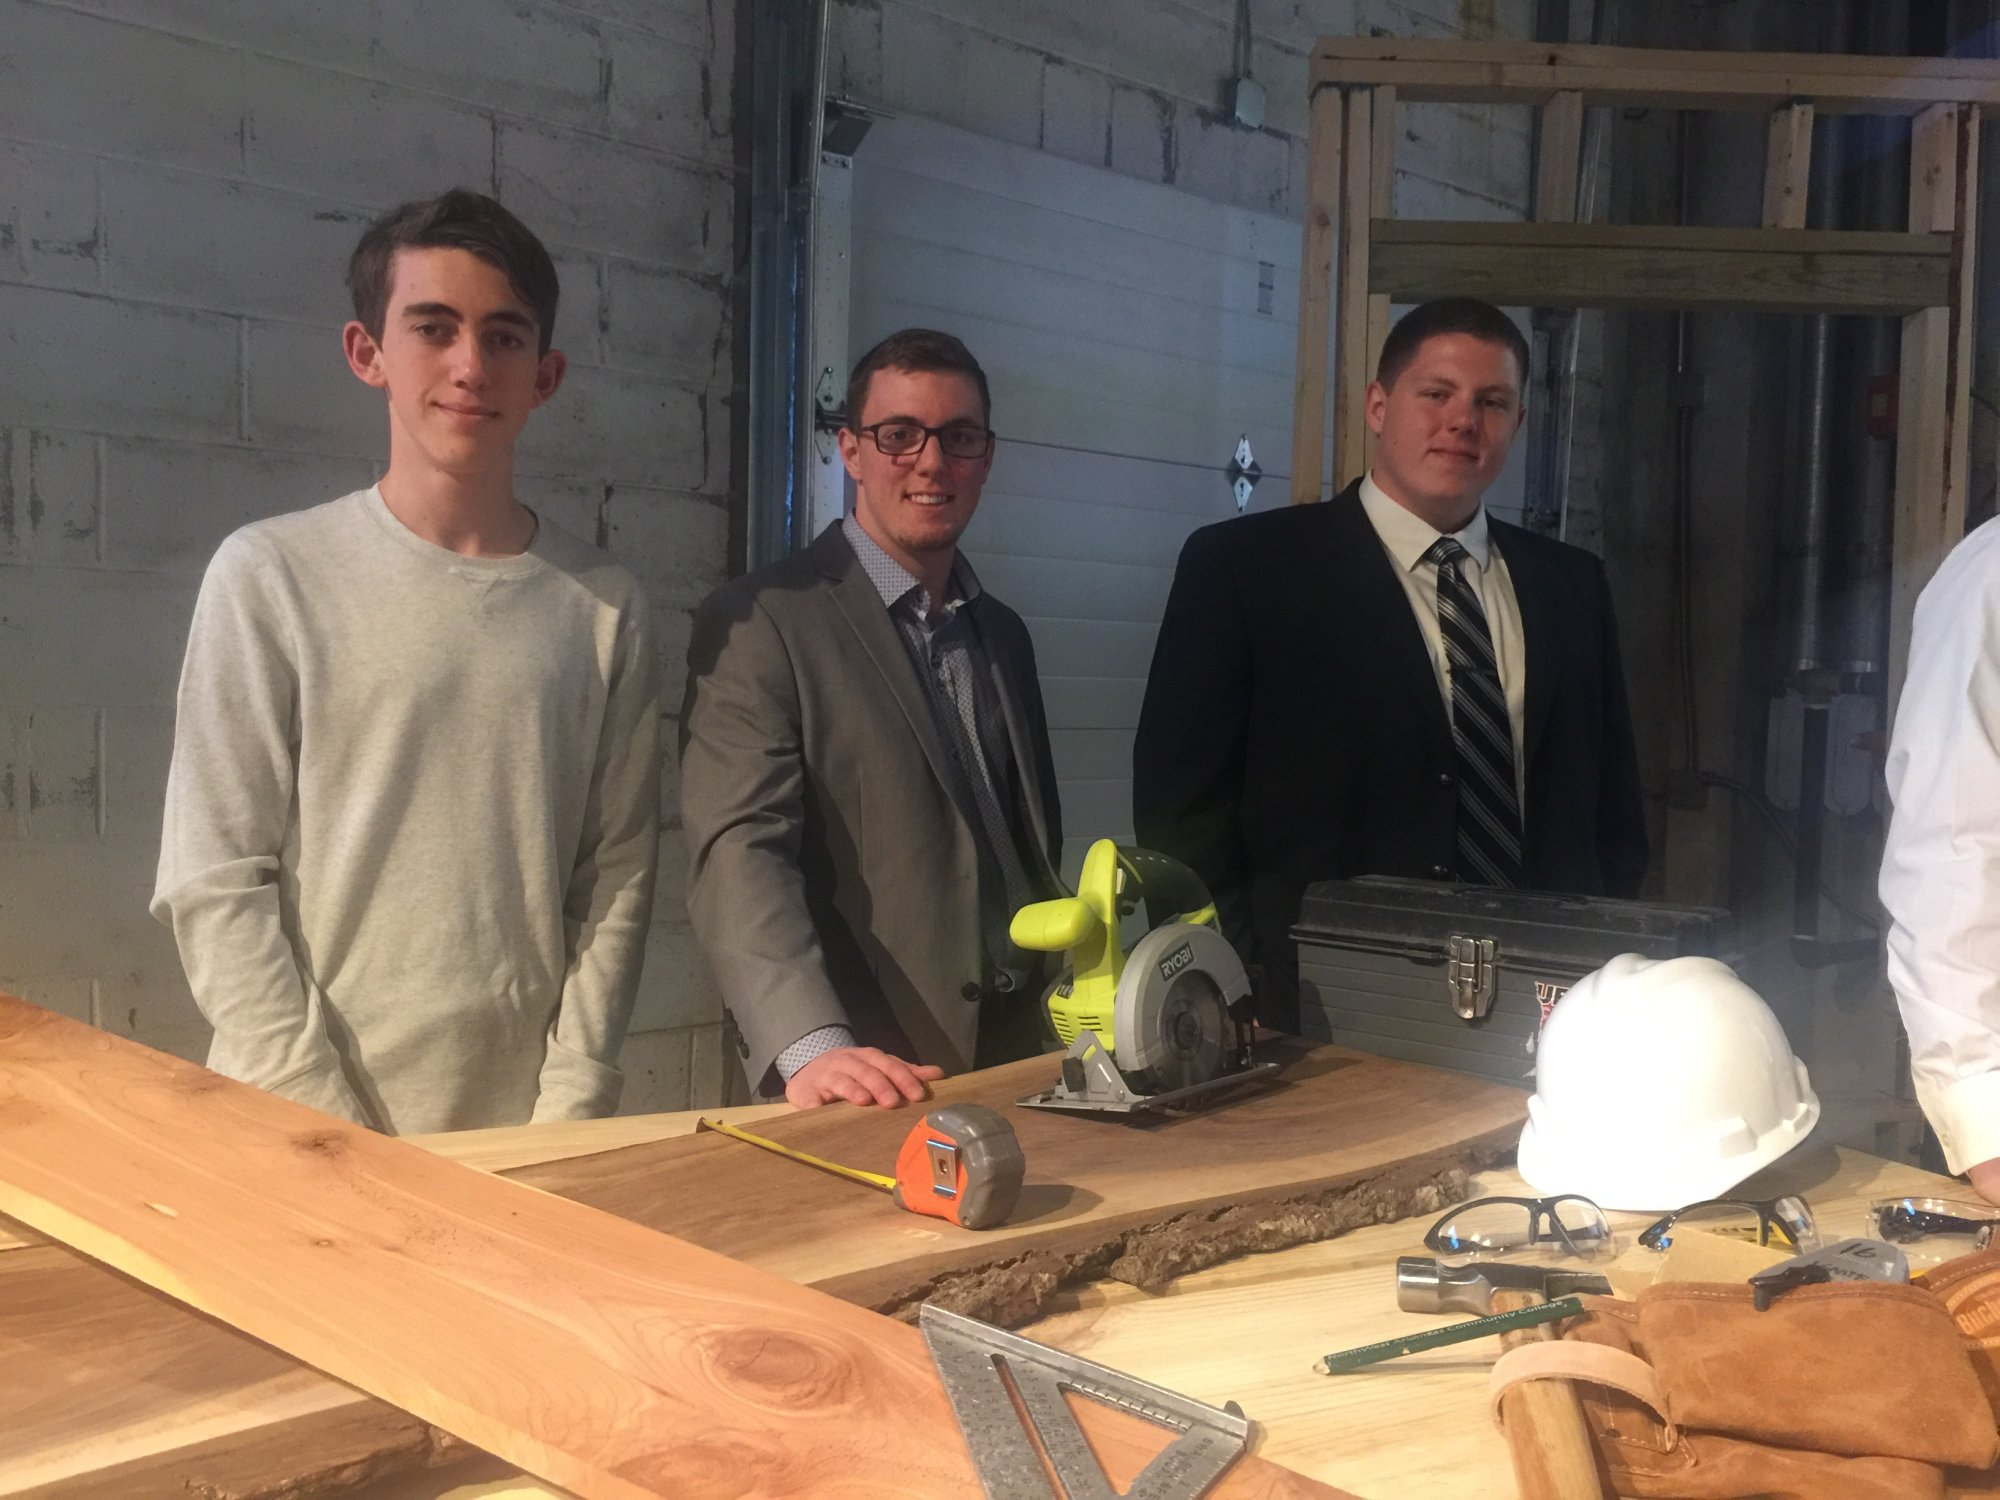 From left to right, Bentonville students Payton Harris, Alex Blevins and Sam Appling. Payton received the student of the year award for the Construction Professions and Management career strand.